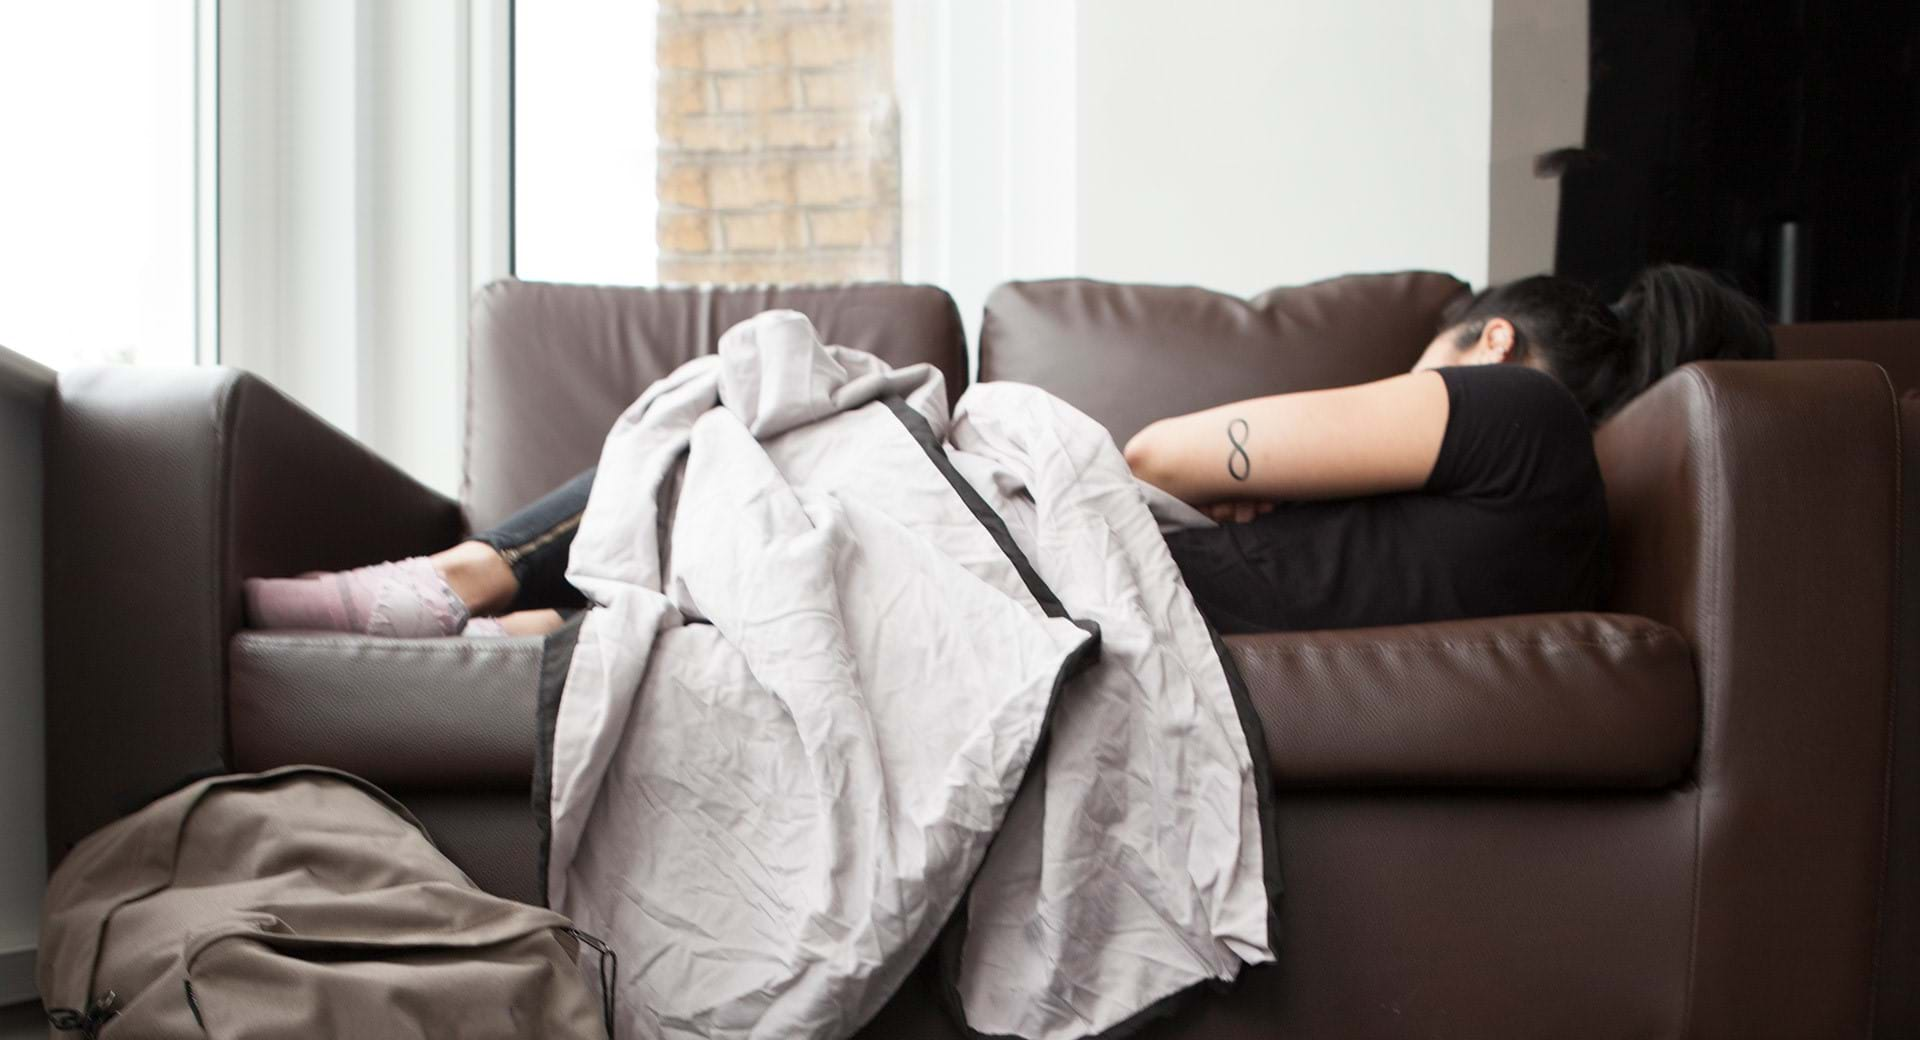 A girl sofa surfing who can access support from Centrepoint Helpline on 0808 800 0661.